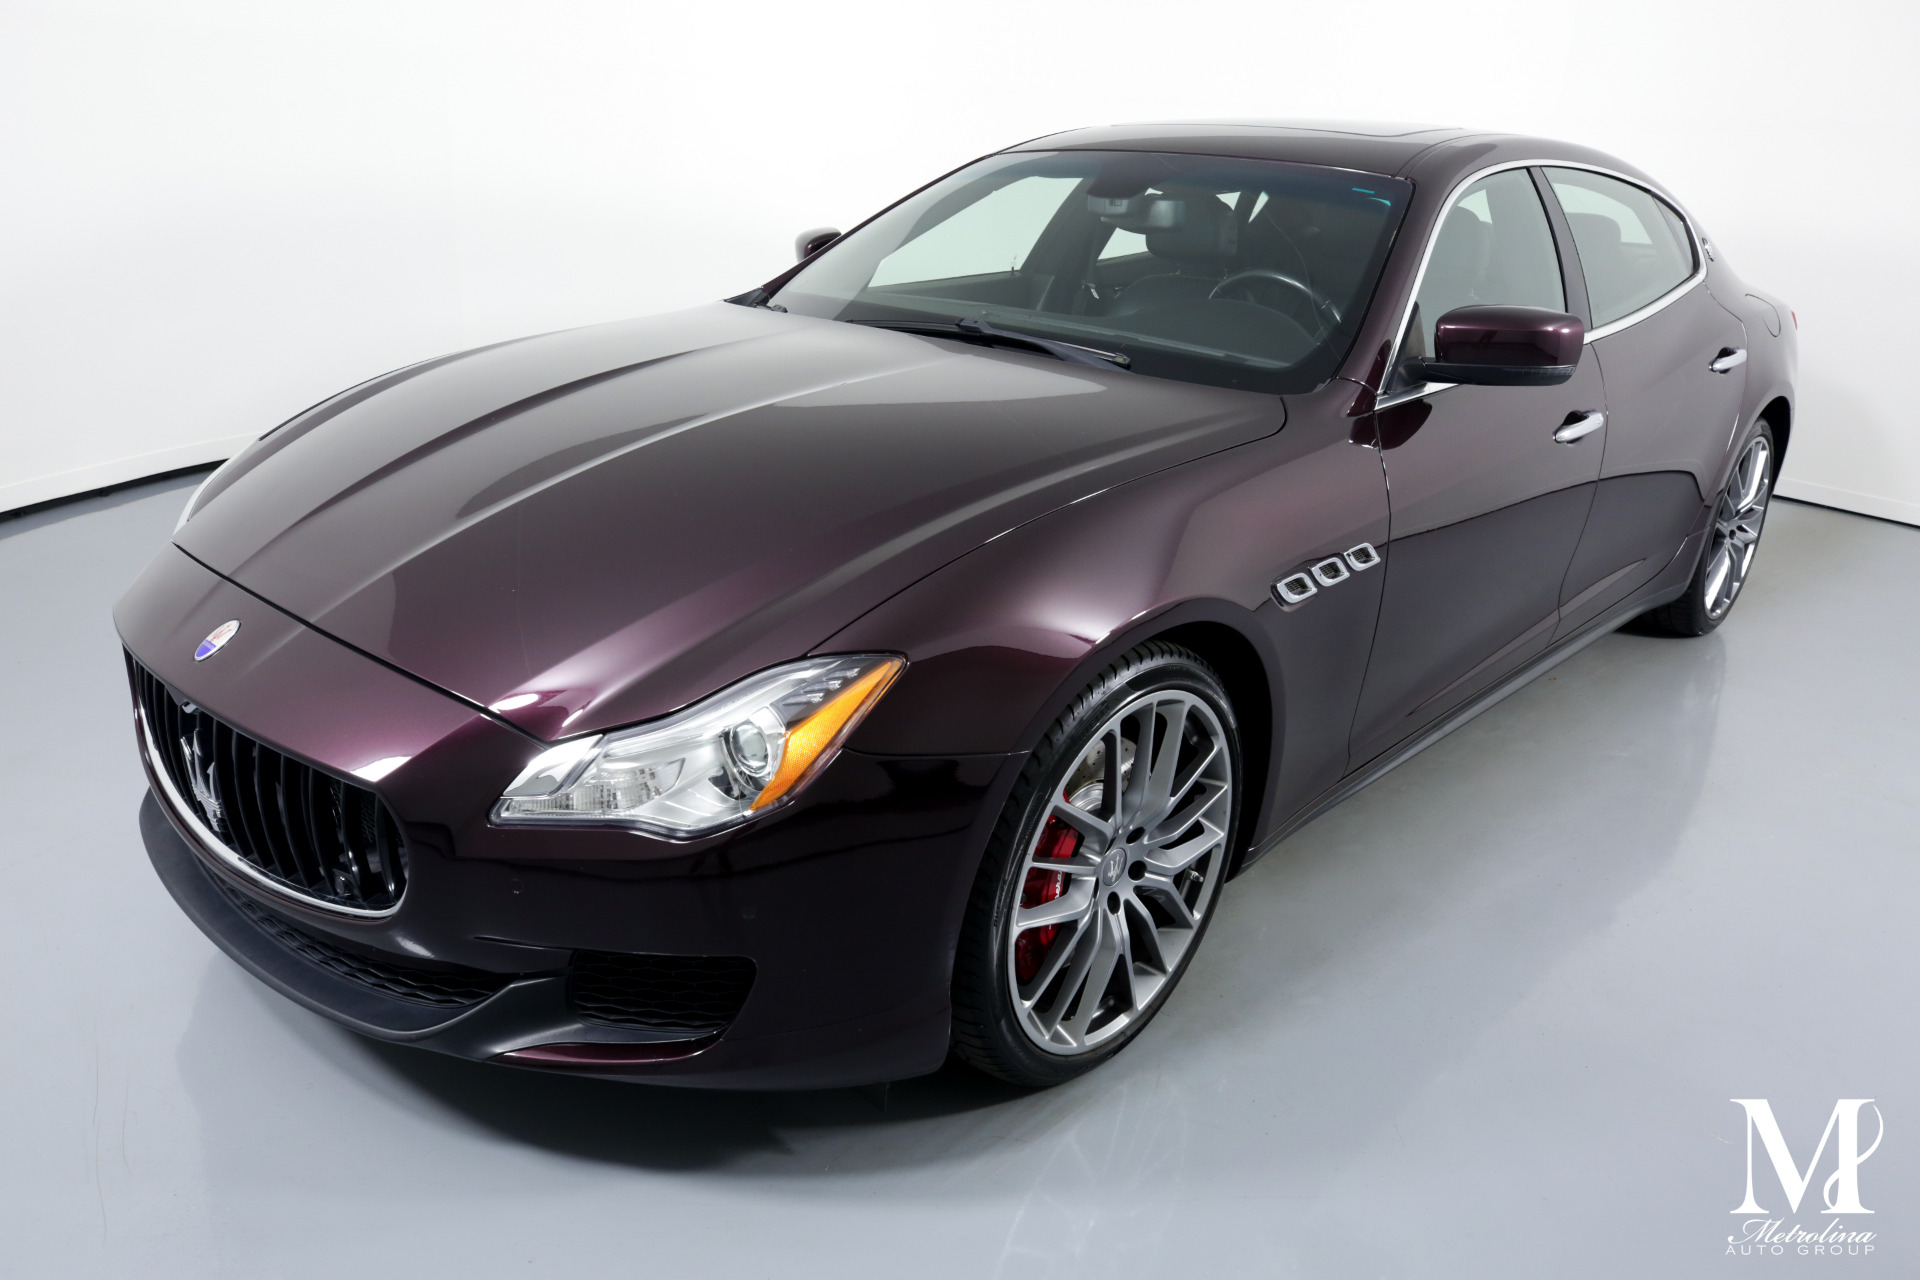 Used 2014 Maserati Quattroporte Sport GT S for sale $39,996 at Metrolina Auto Group in Charlotte NC 28217 - 4